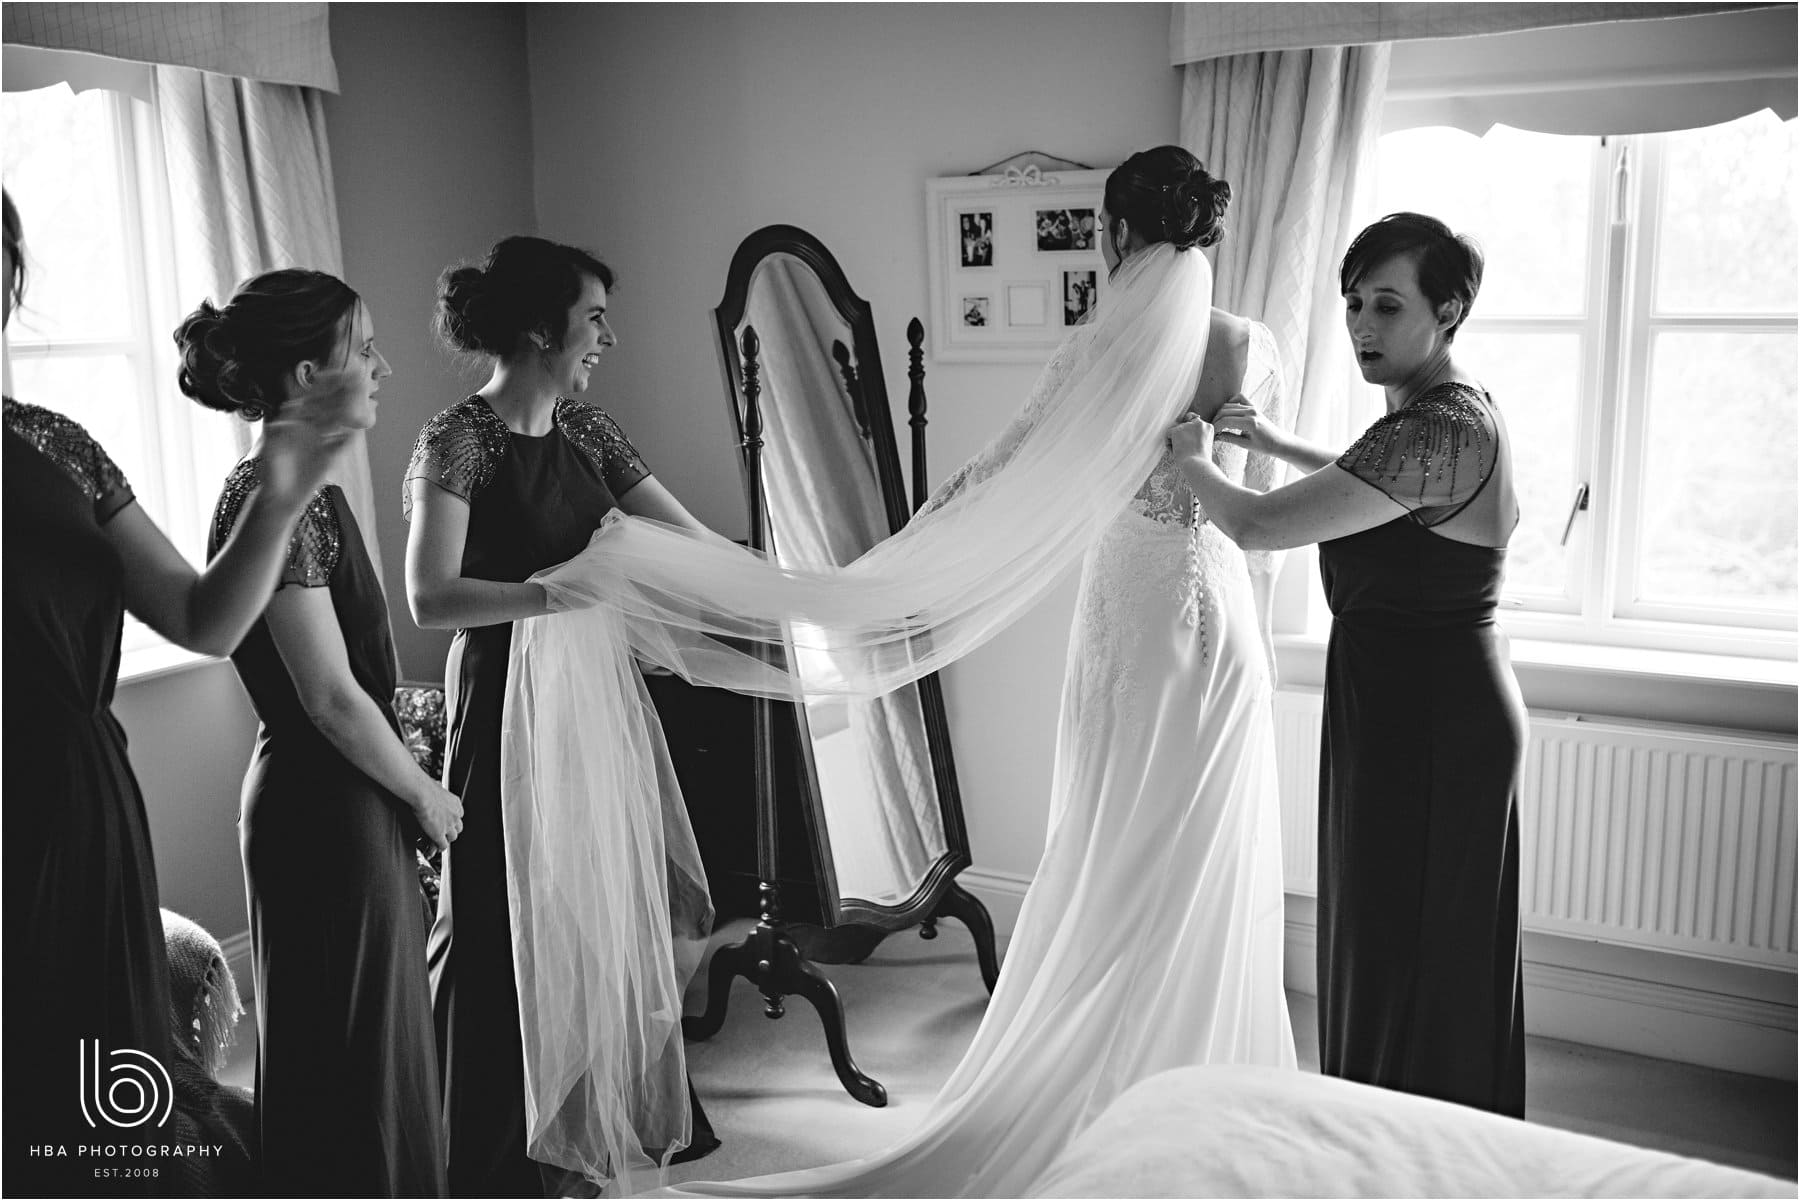 the bride putting her veil in